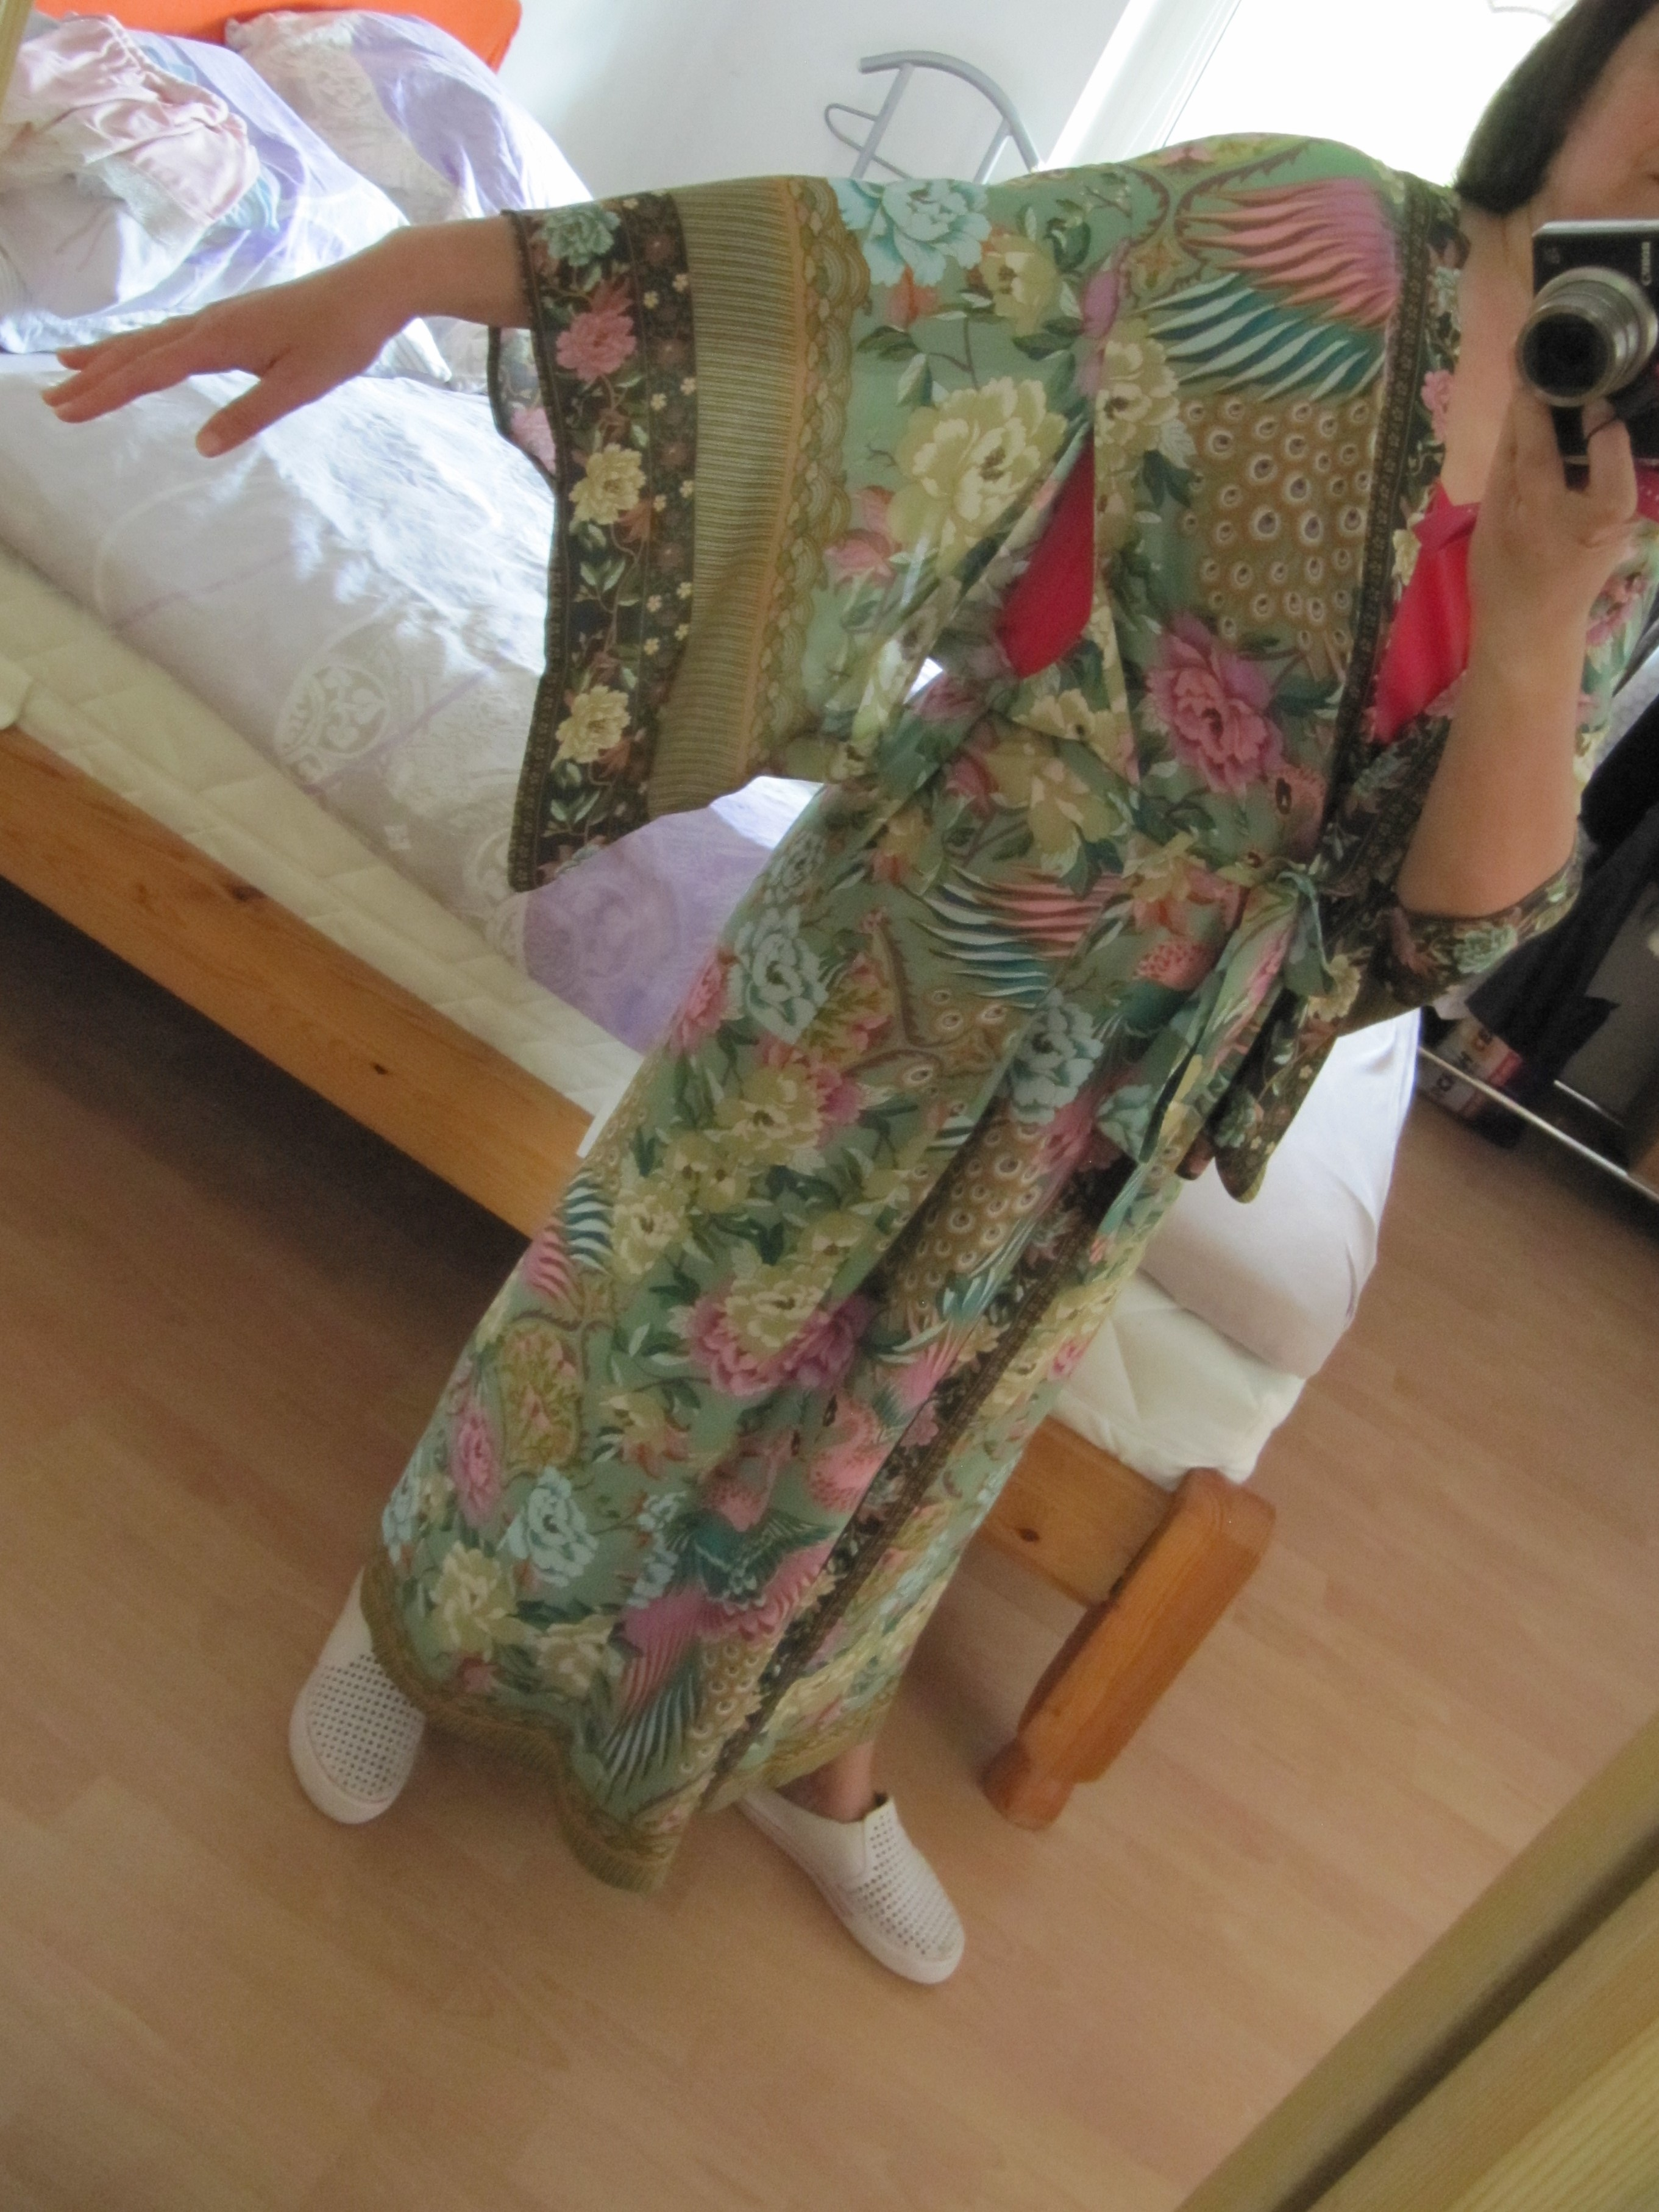 V Neck Peacock Flower Print Long Kimono Shirt Ethnic New Lacing Up With Sashes Long Cardigan Loose Blouse Tops Femme photo review